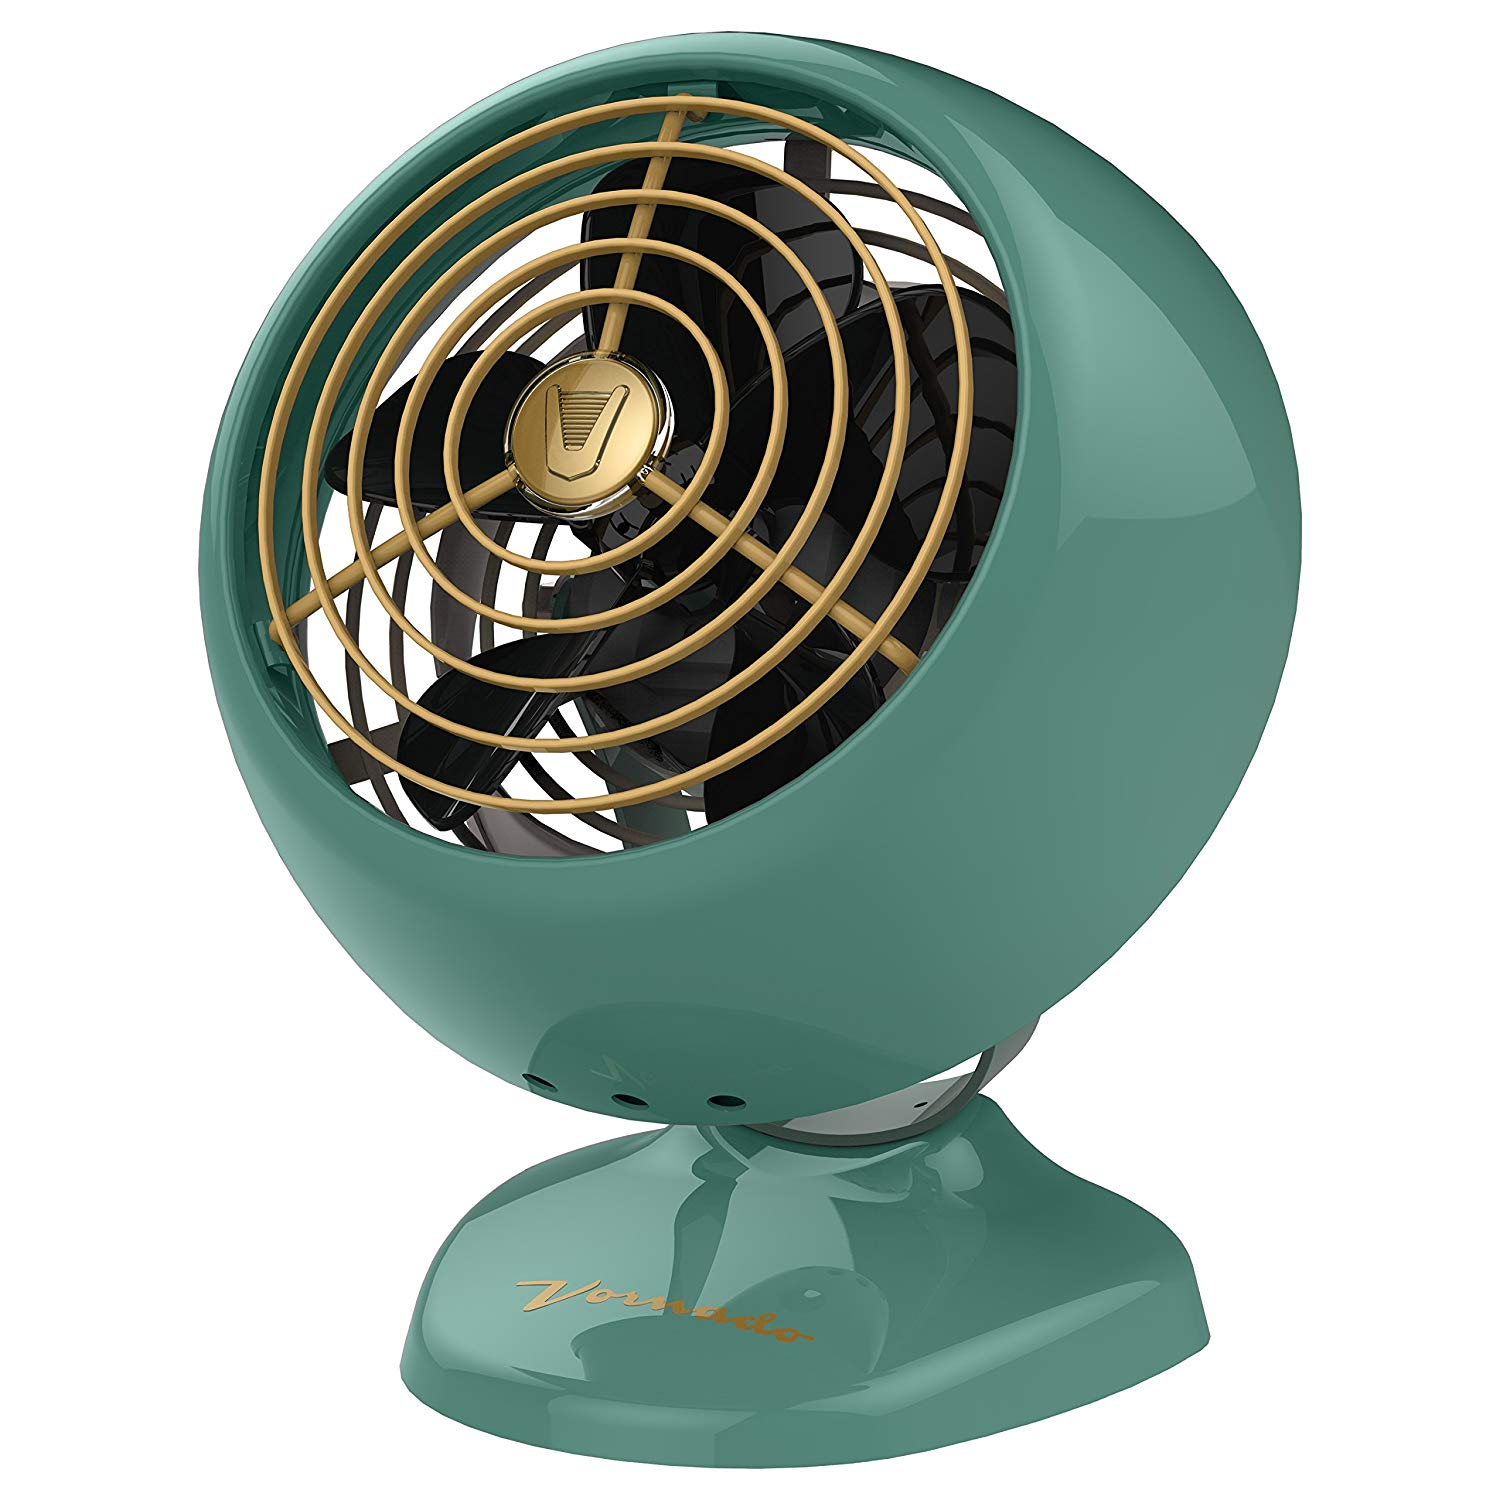 Vornado VFAN Mini Classic Personal Vintage Air Circulator Fan - Things You Should Have on Your Office Desk